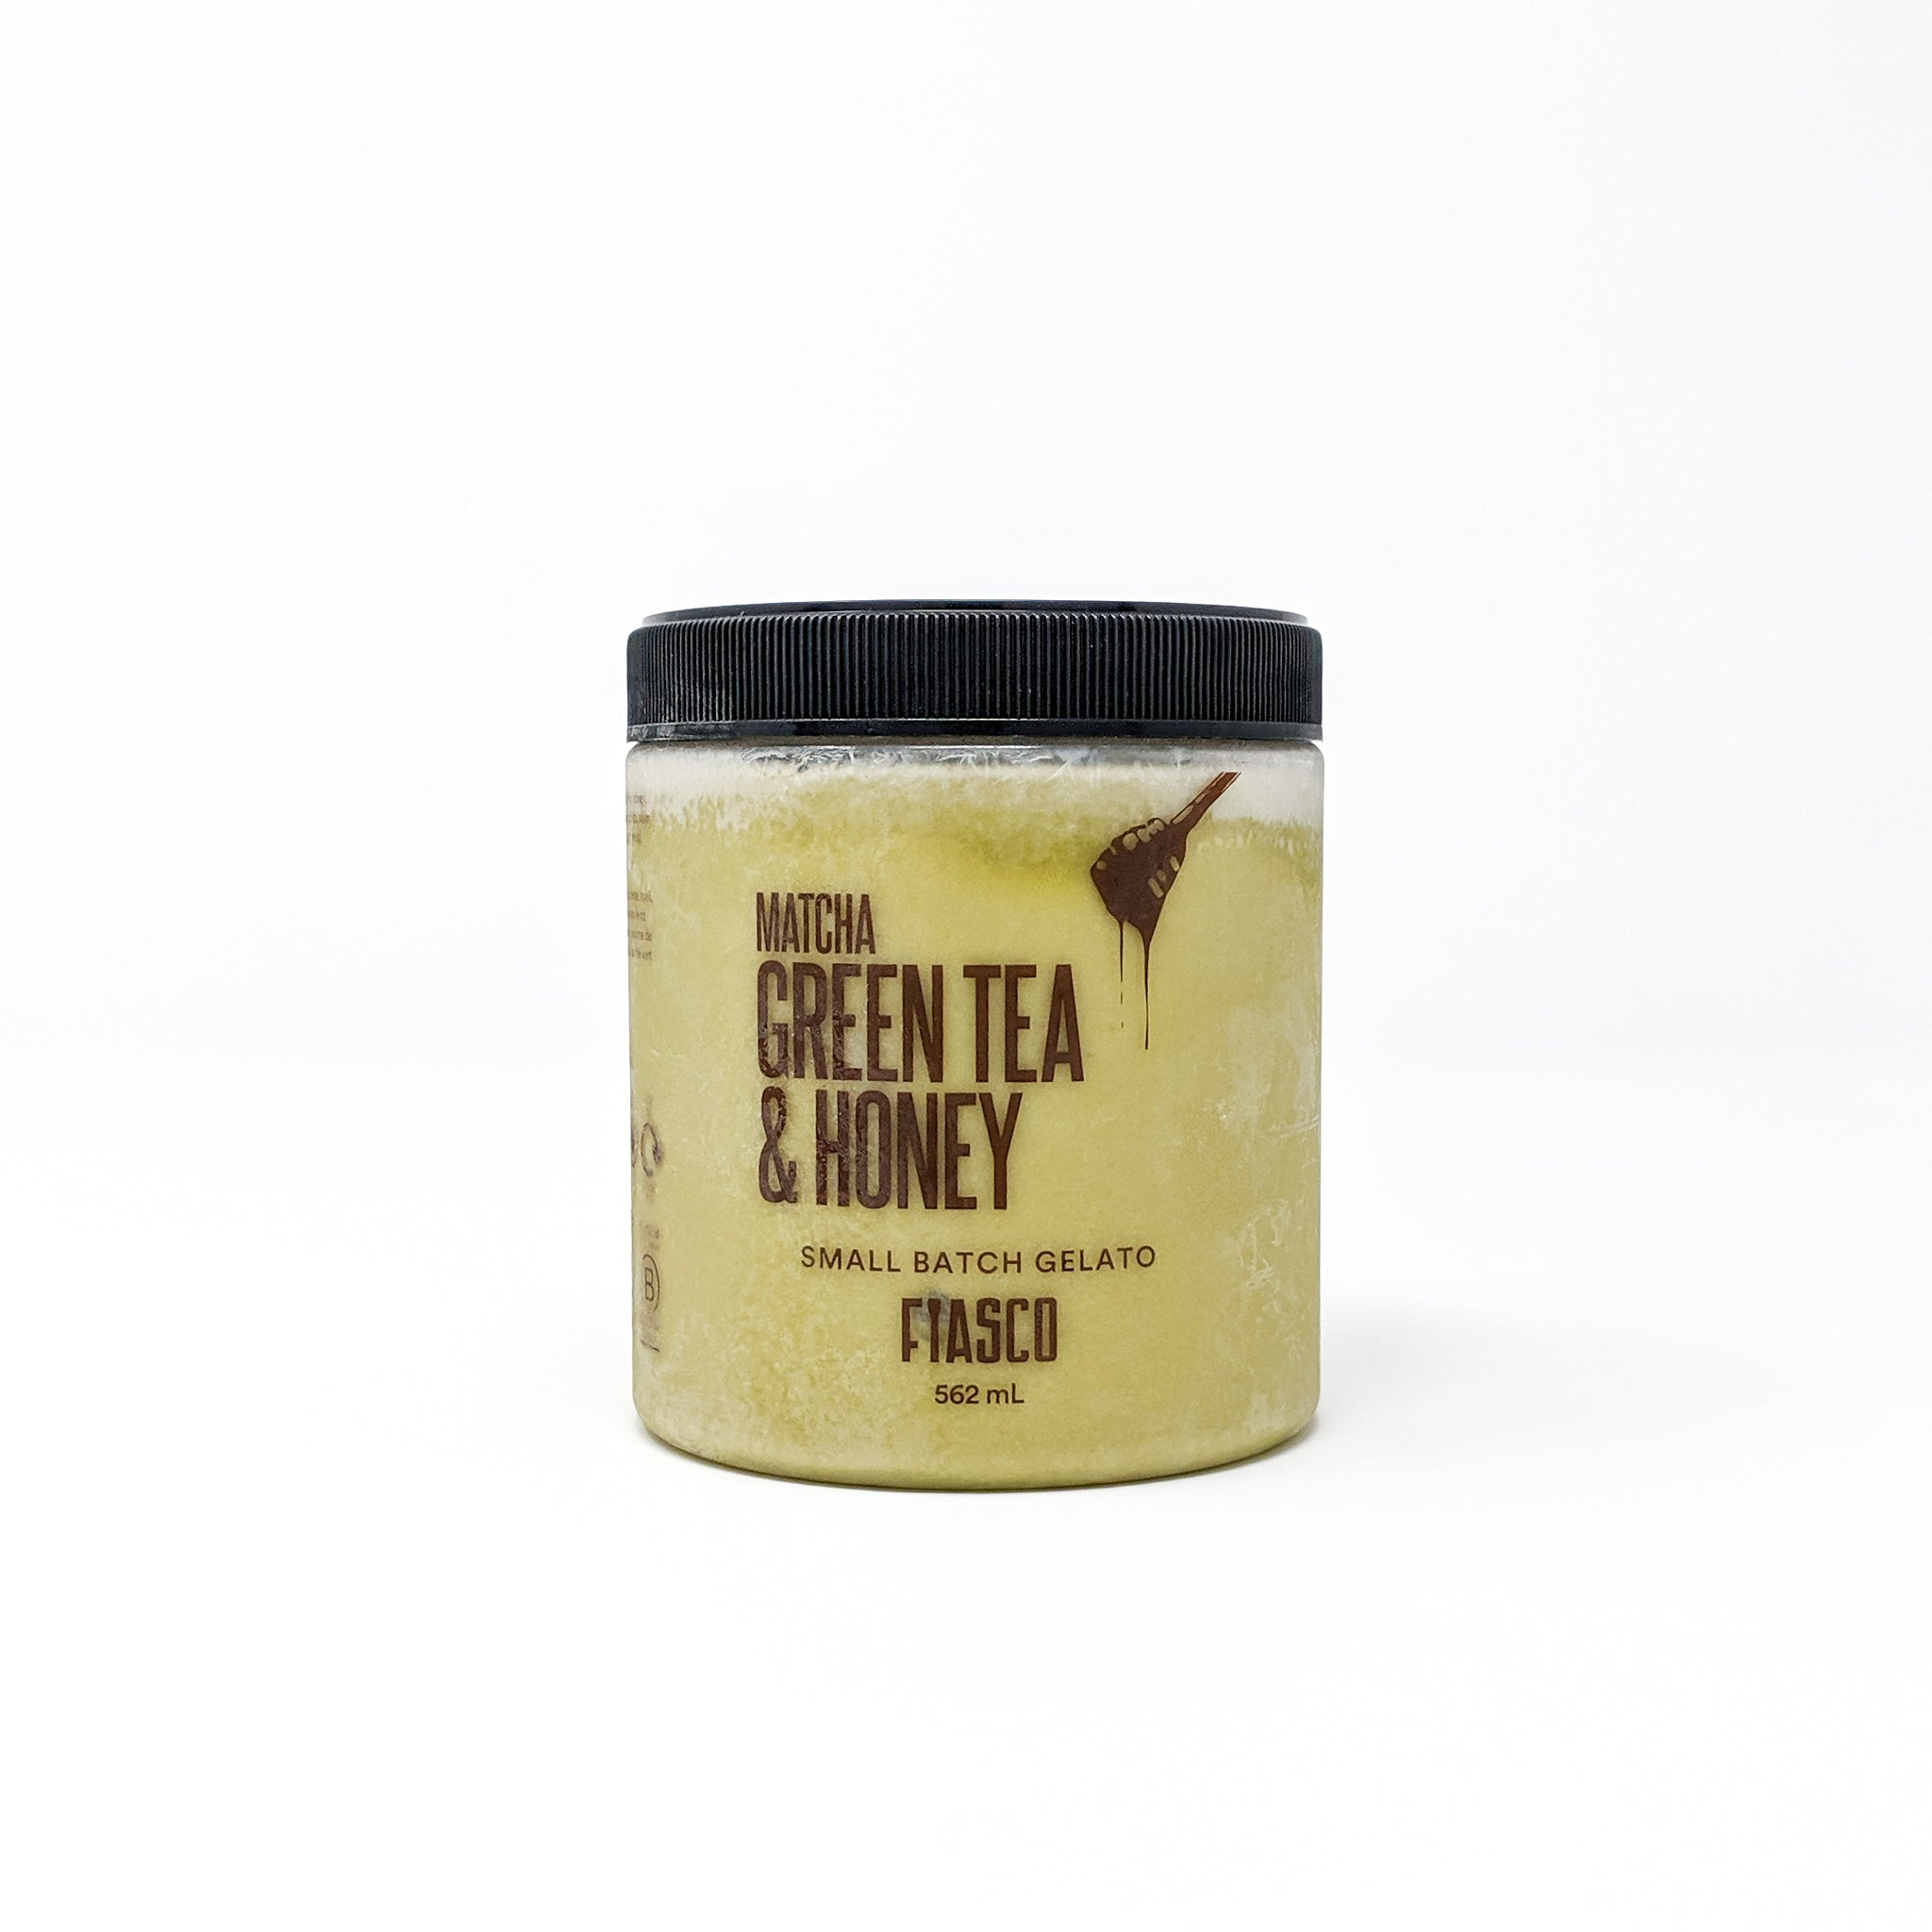 Matcha Green Tea & Honey Gelato 562ml - Fiasco